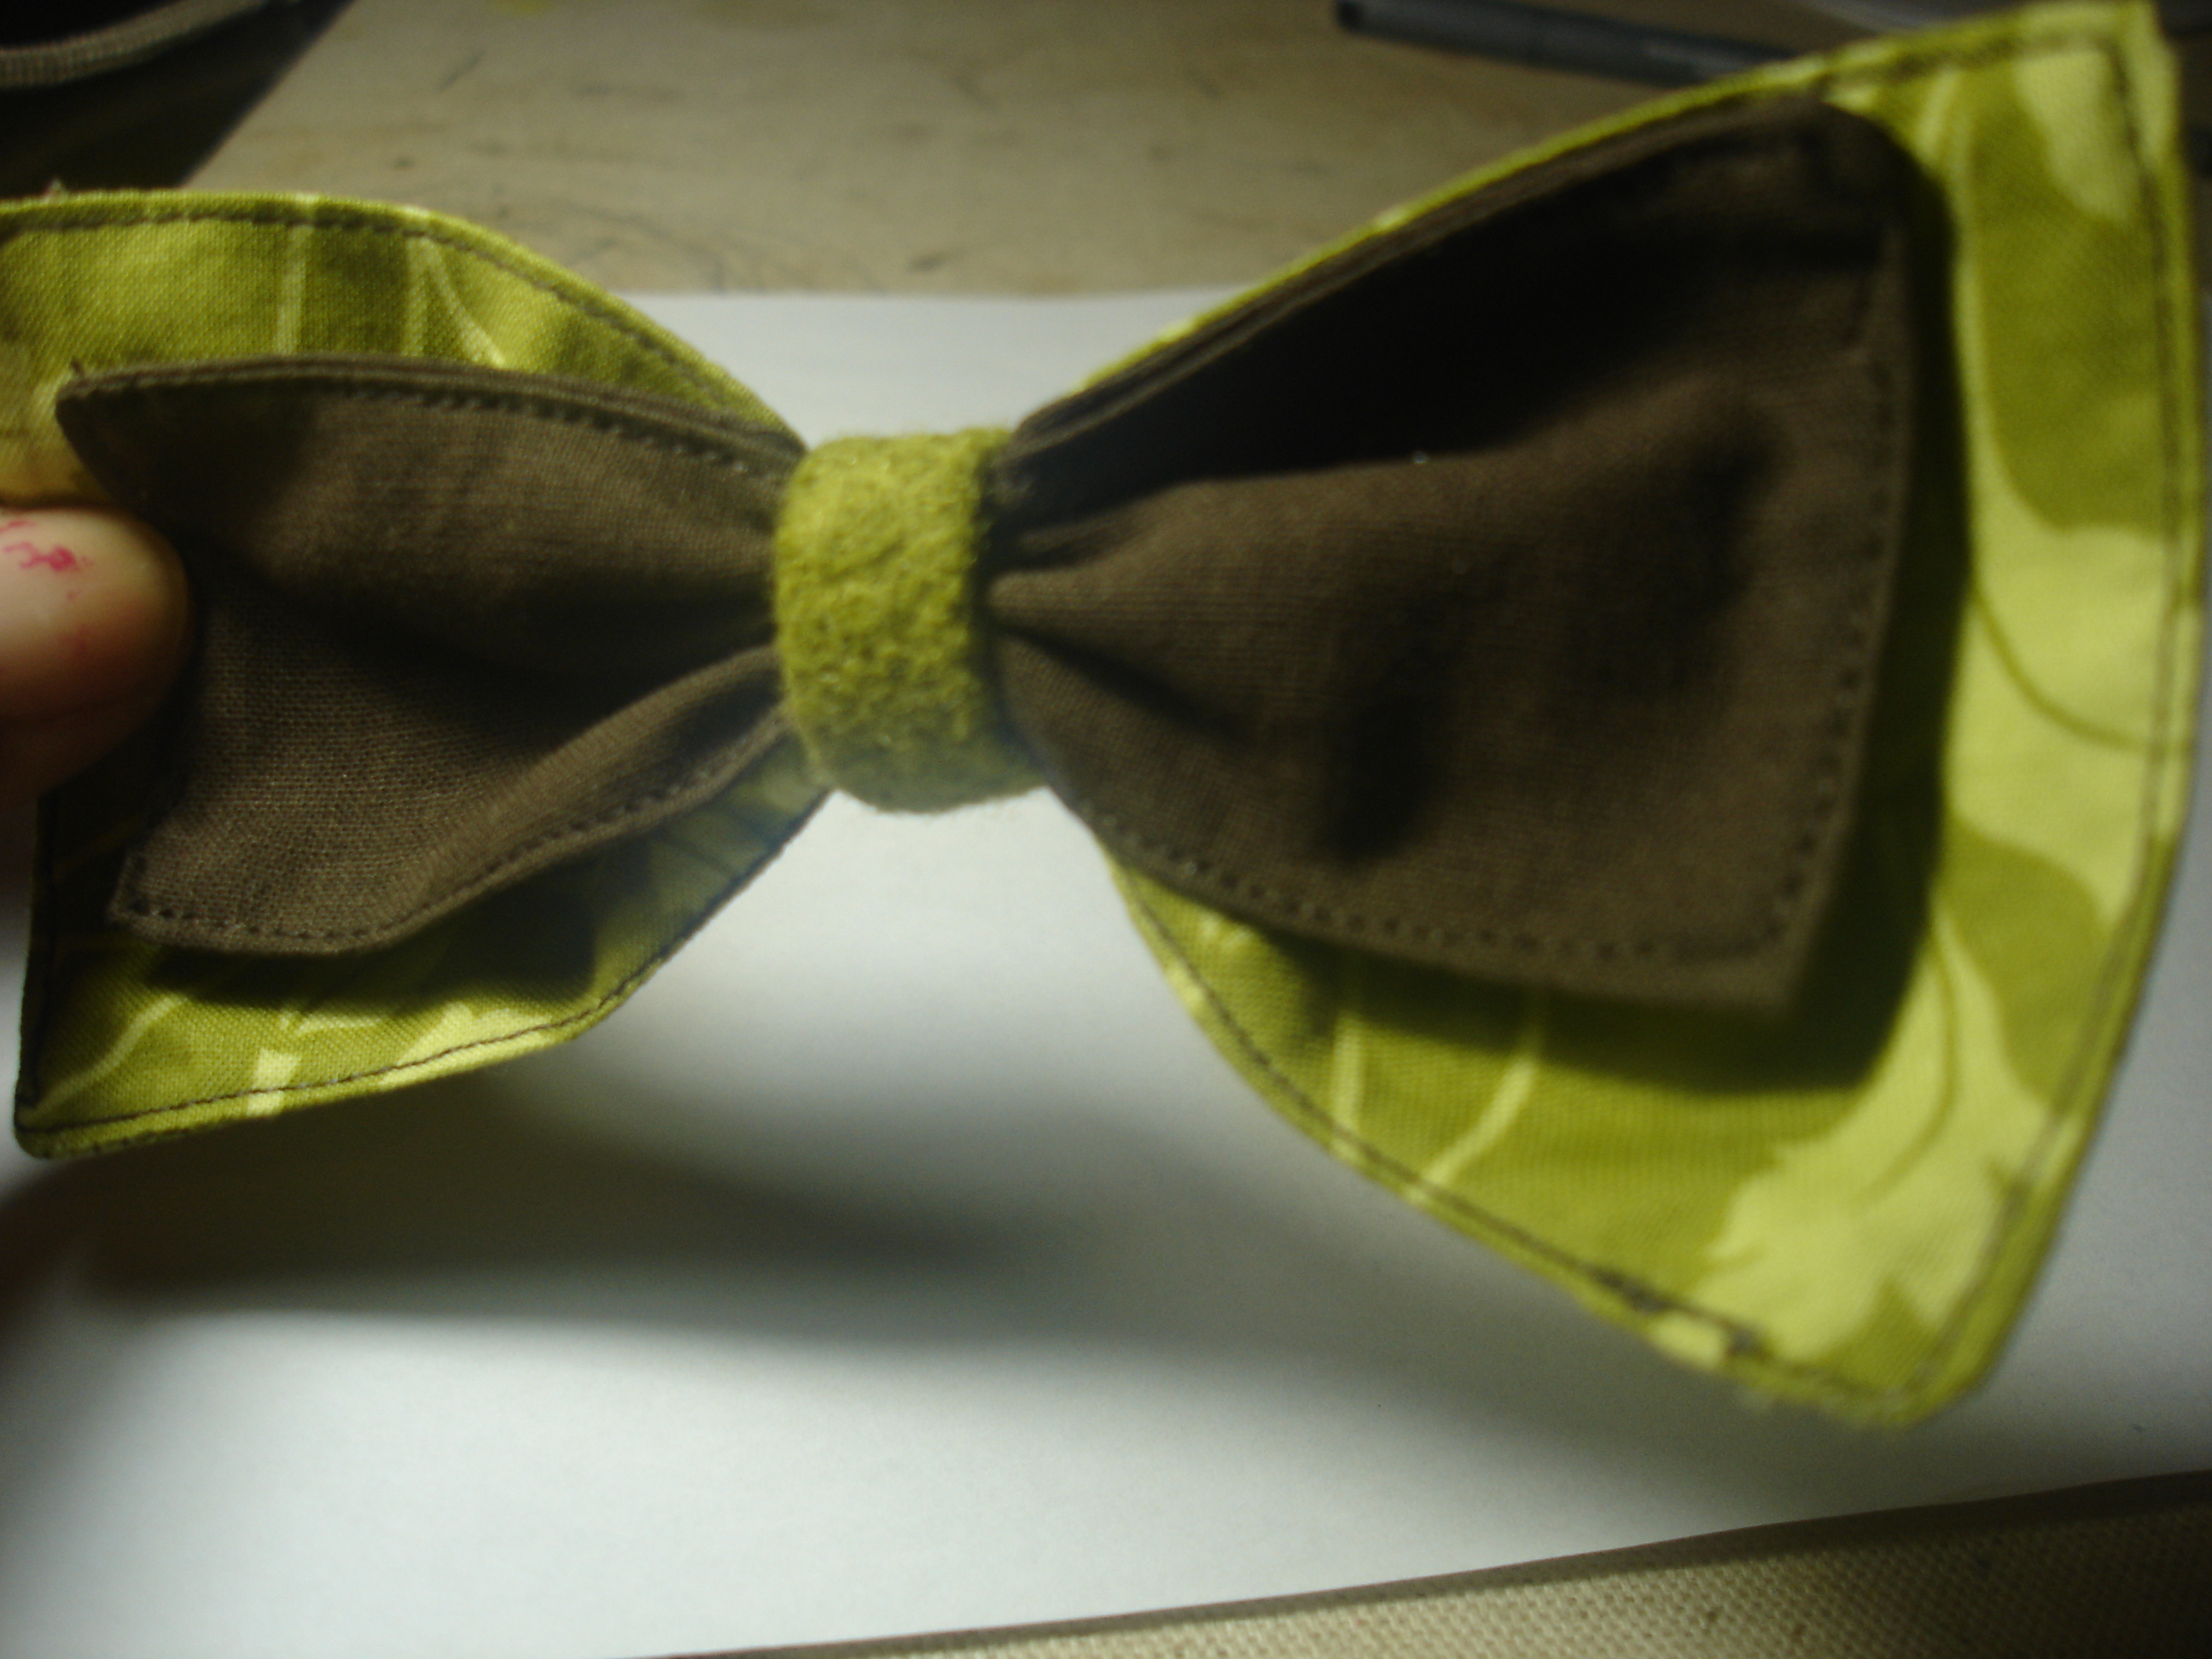 How To Make A Fabric Bow 17 Steps With Pictures Instructables